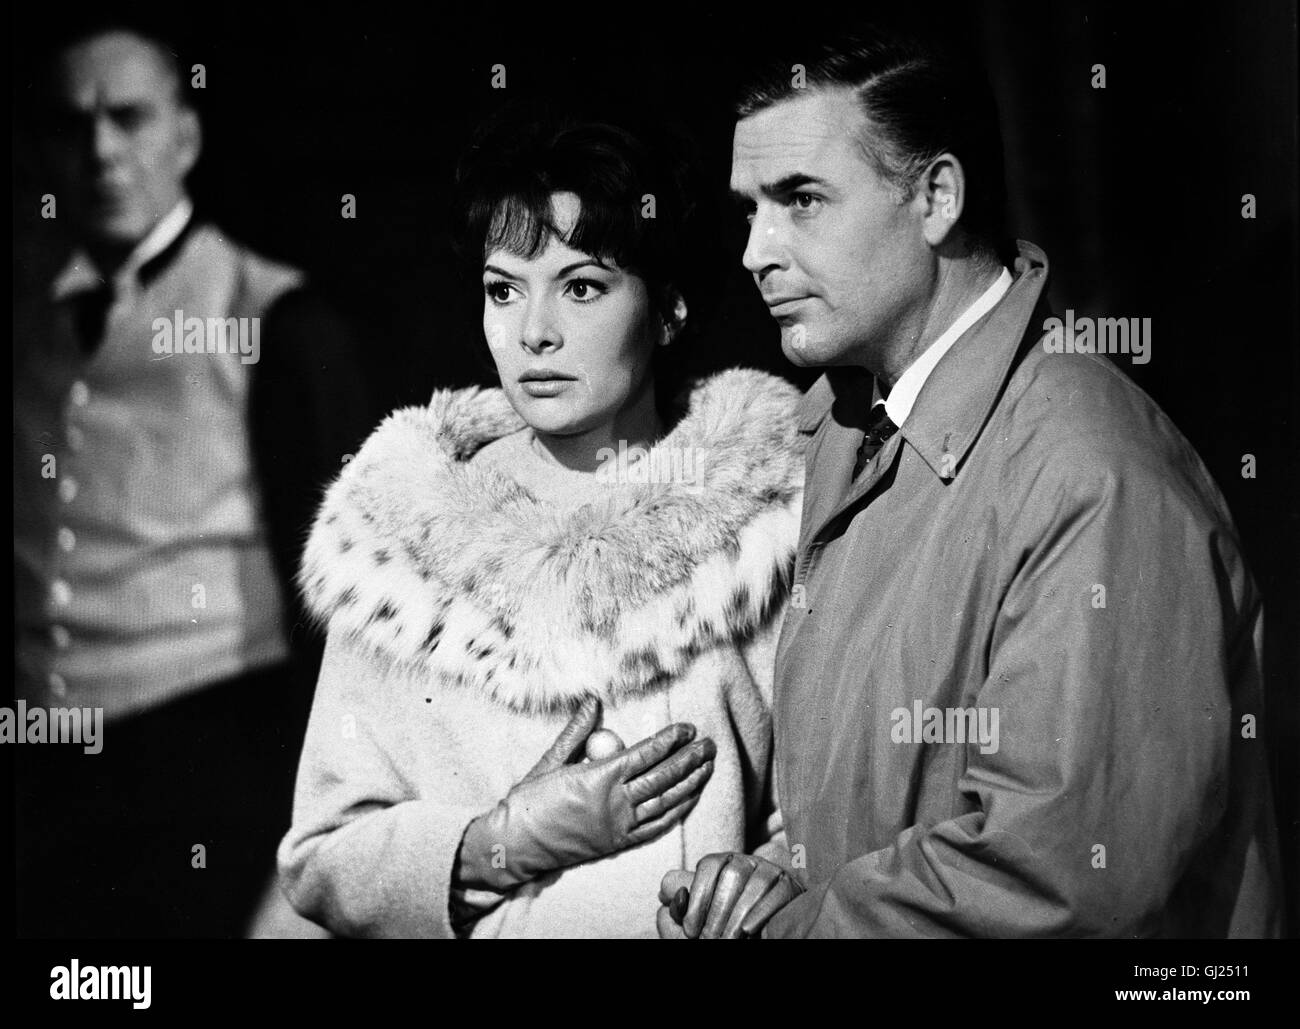 Karin dor black and white stock photos images alamy - Spinne im zimmer was tun ...